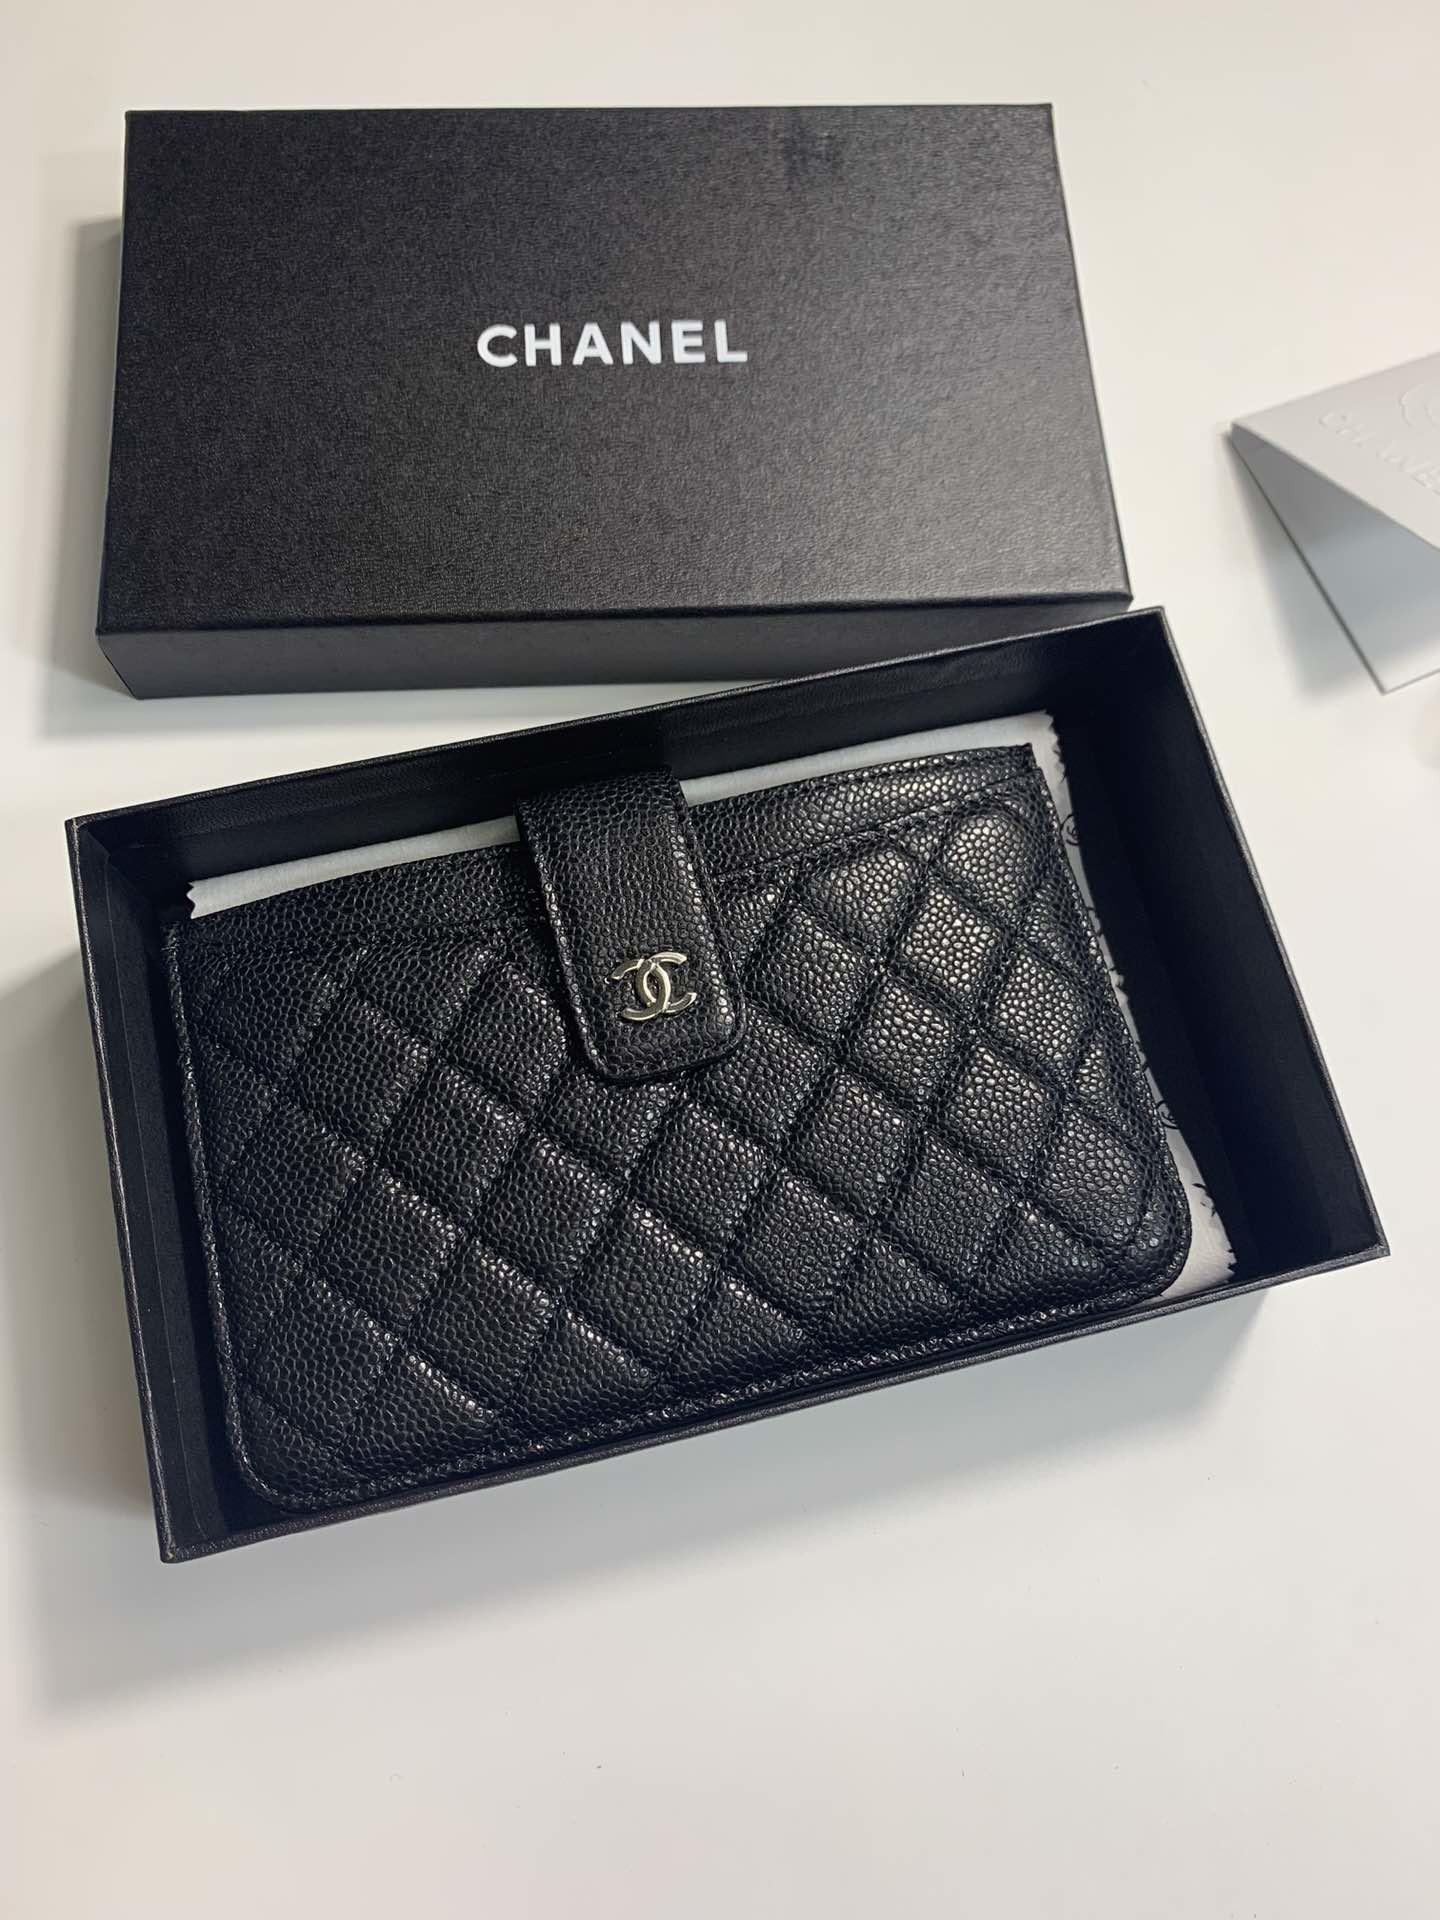 Replica Chanel Women Small Card Bag Grained Calfskin Silver-Tone